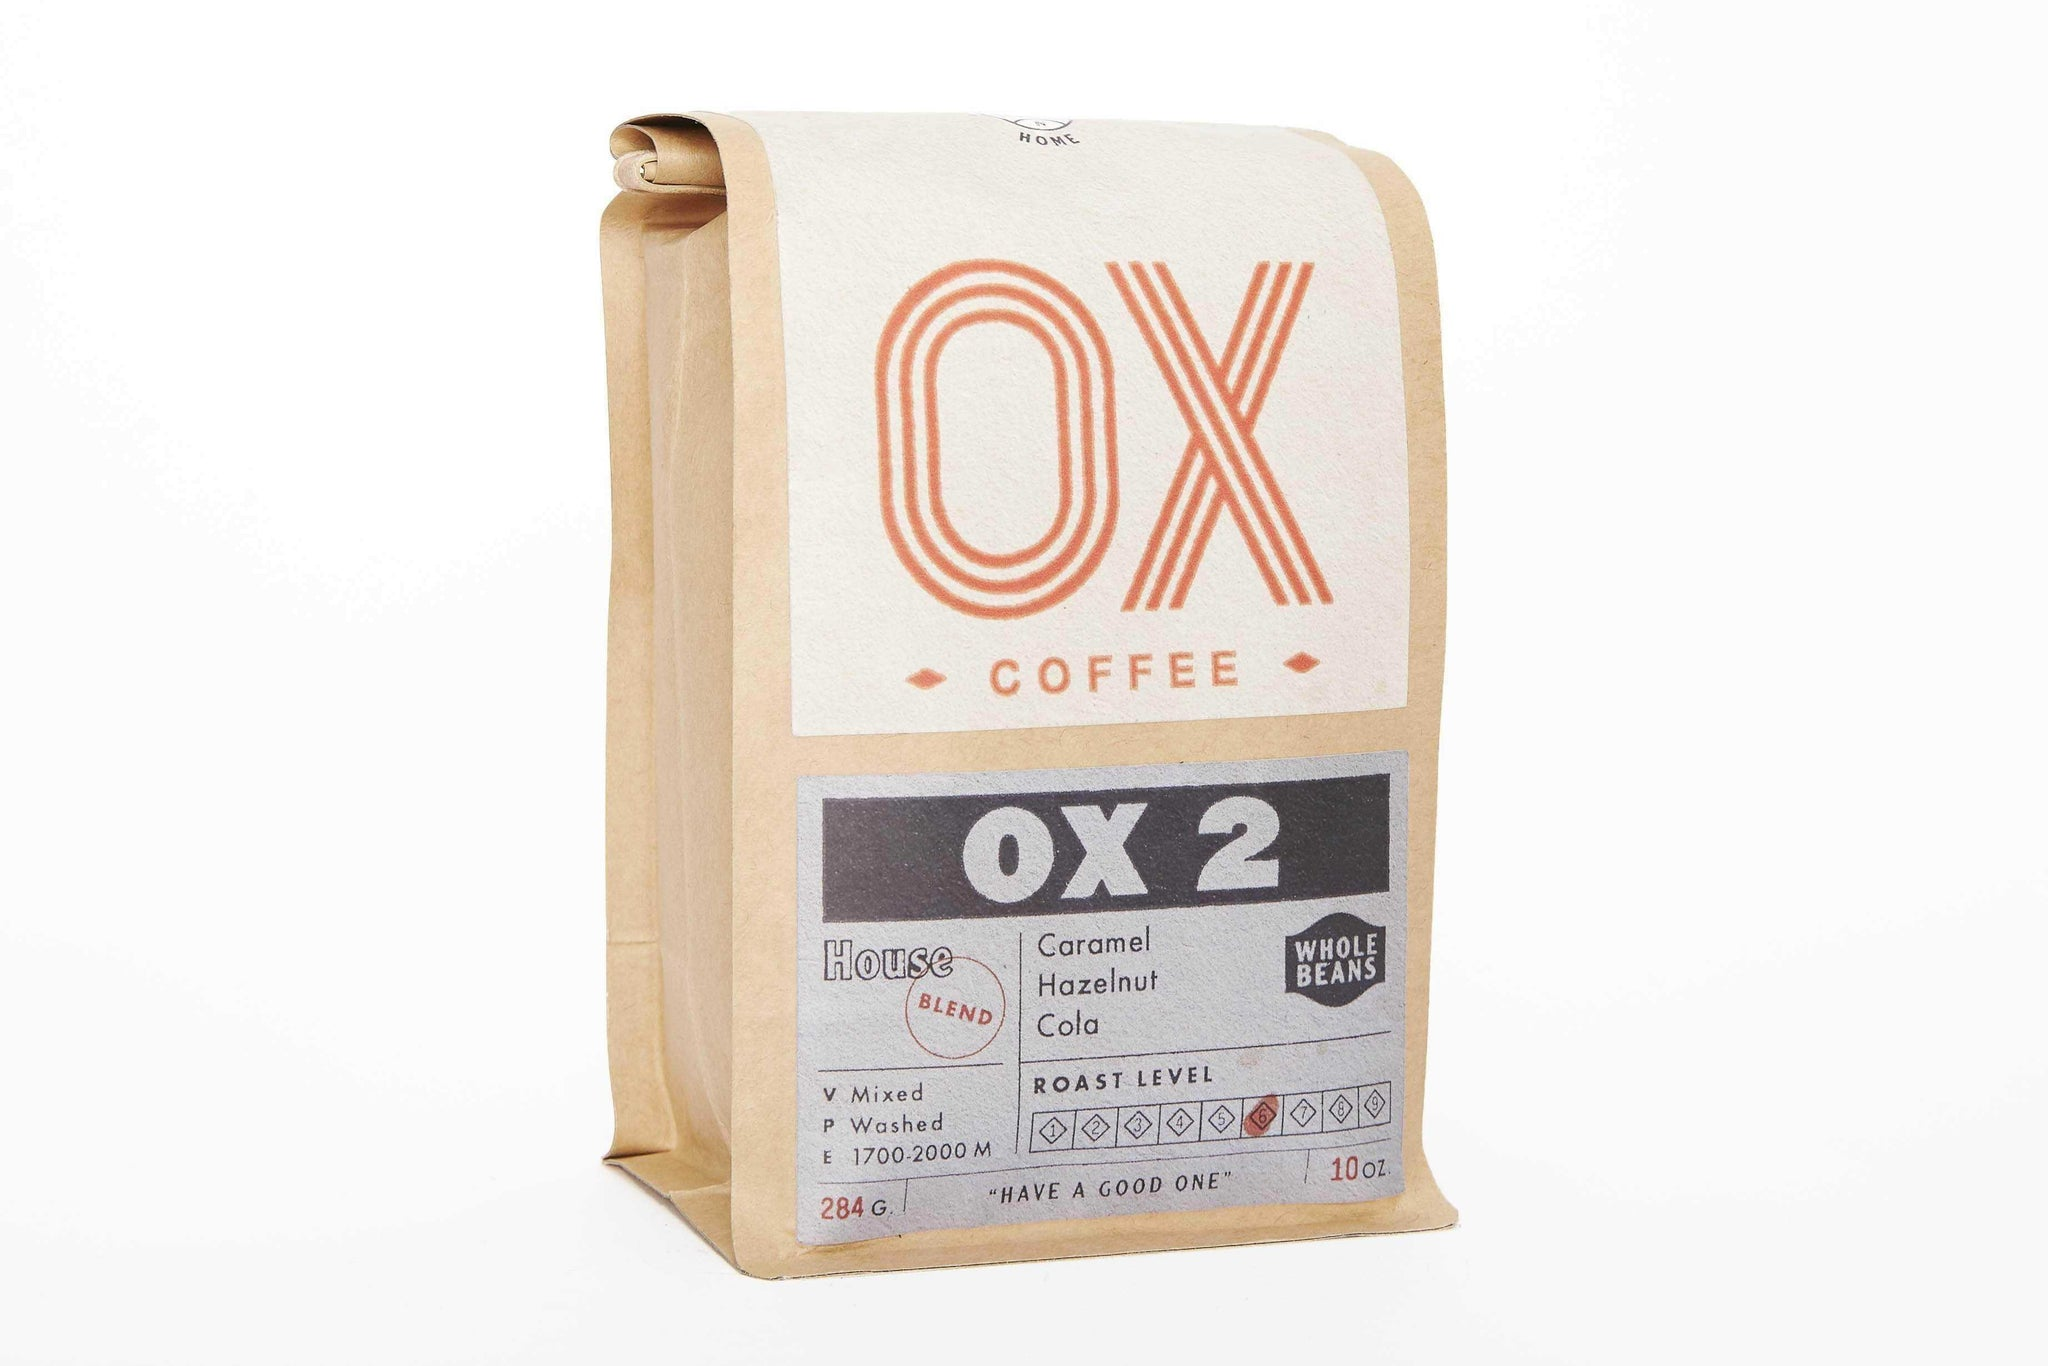 OX 2 | OX Coffee Roasters | Dript Coffee Co.